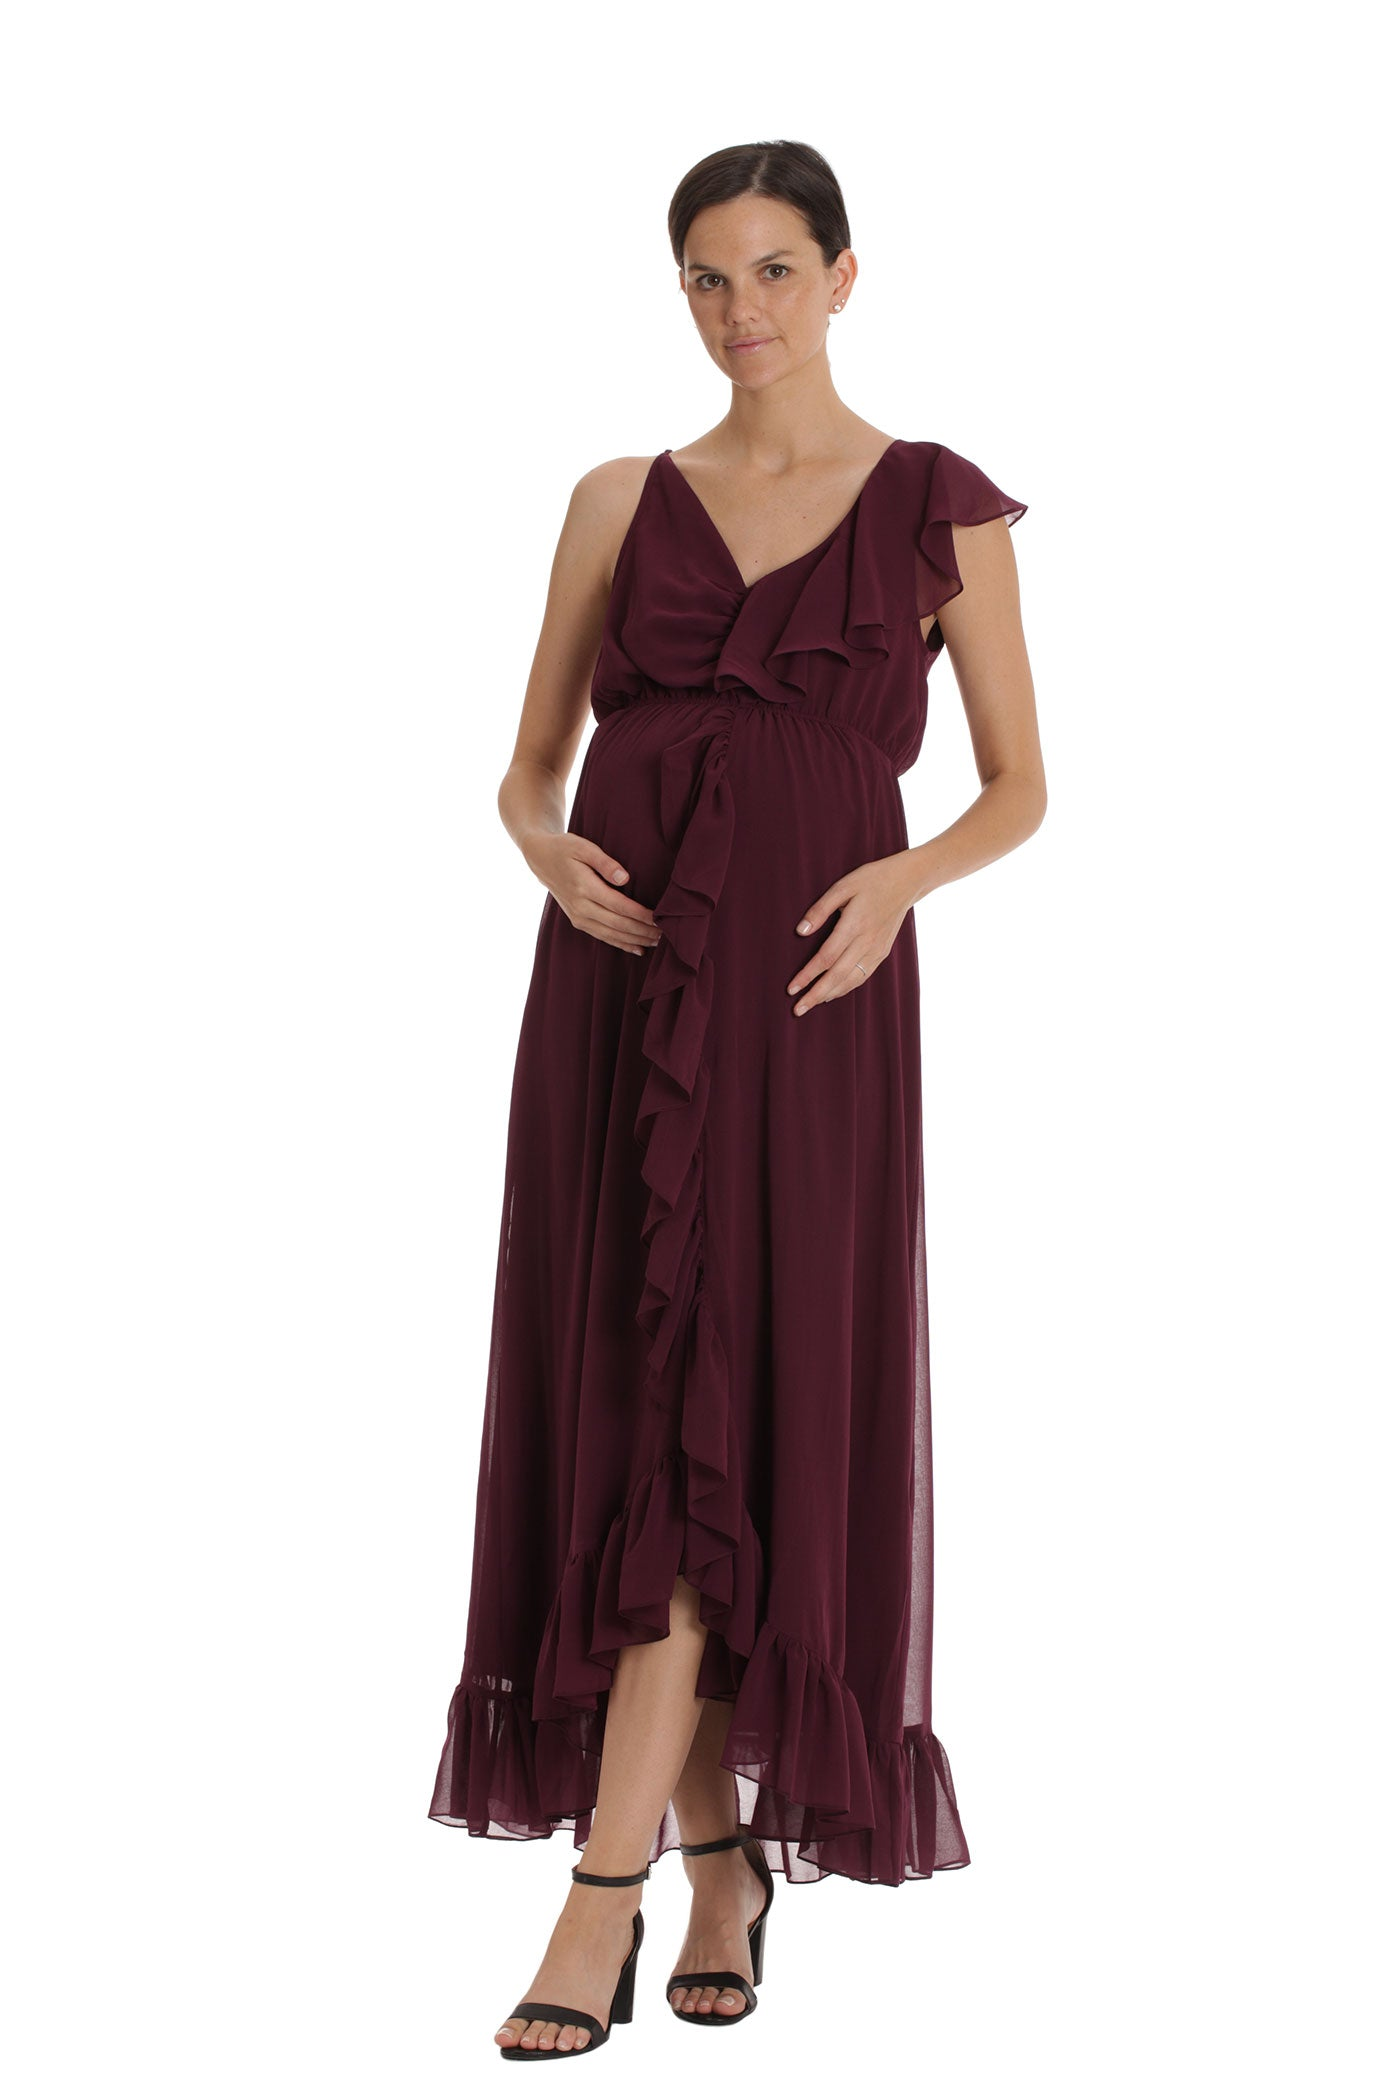 The Estelle Dress - Burgundy